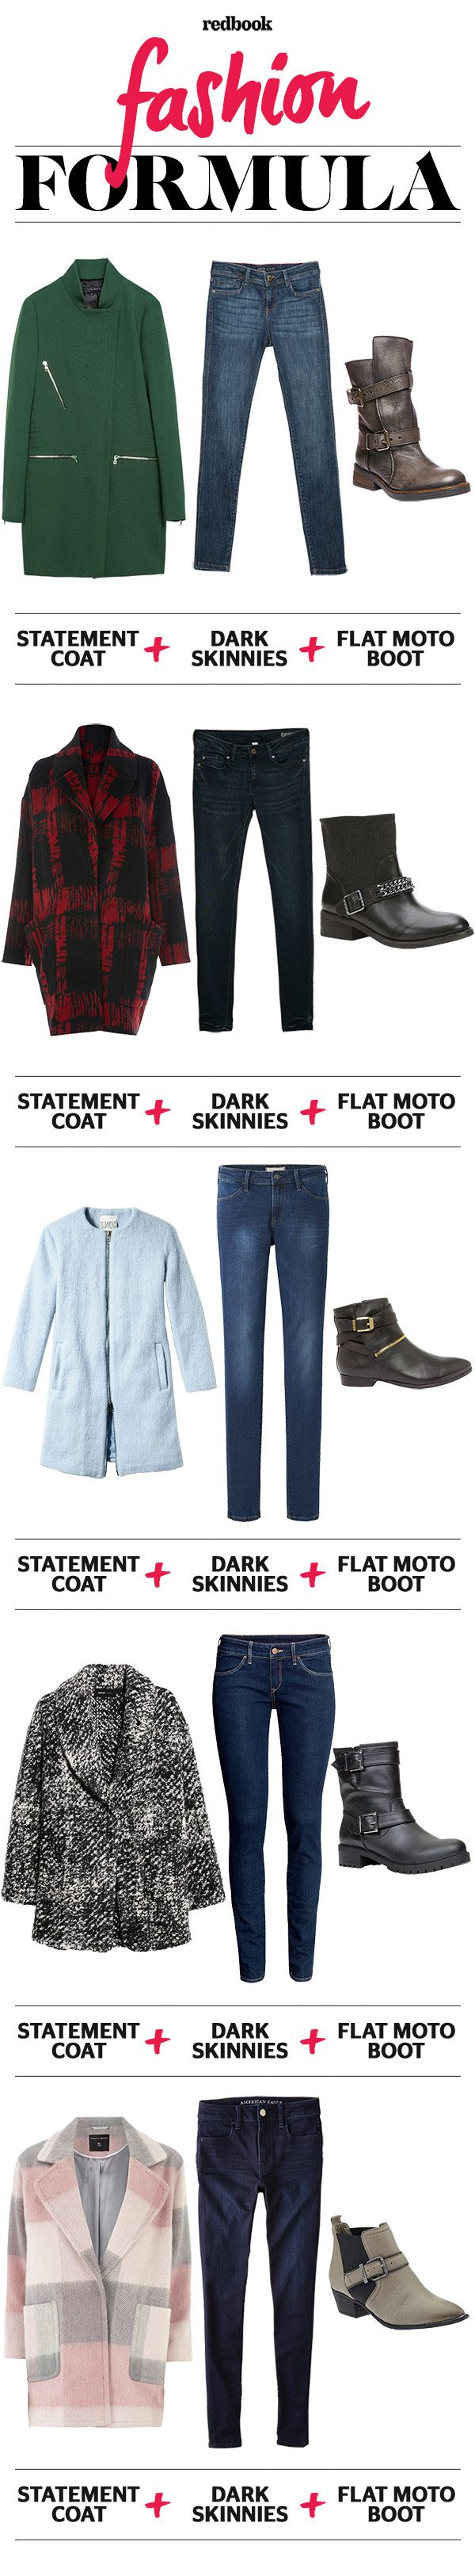 Statement Coat Skinny Jeans And Moto Boots Winter Outfit Ideas